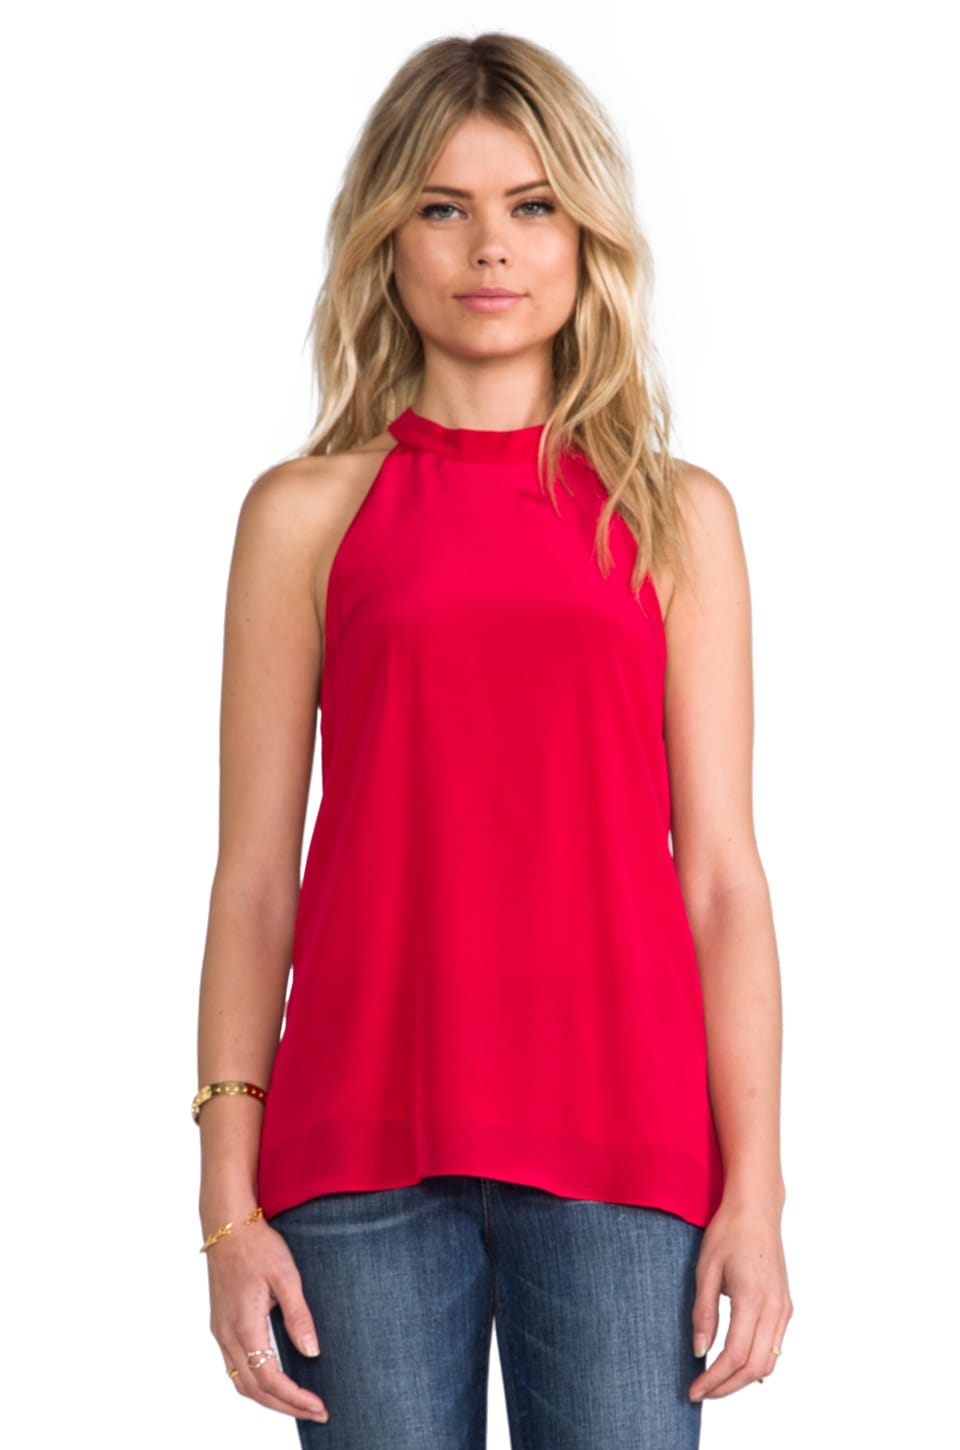 Tibi Halter Top in Lipstick Red